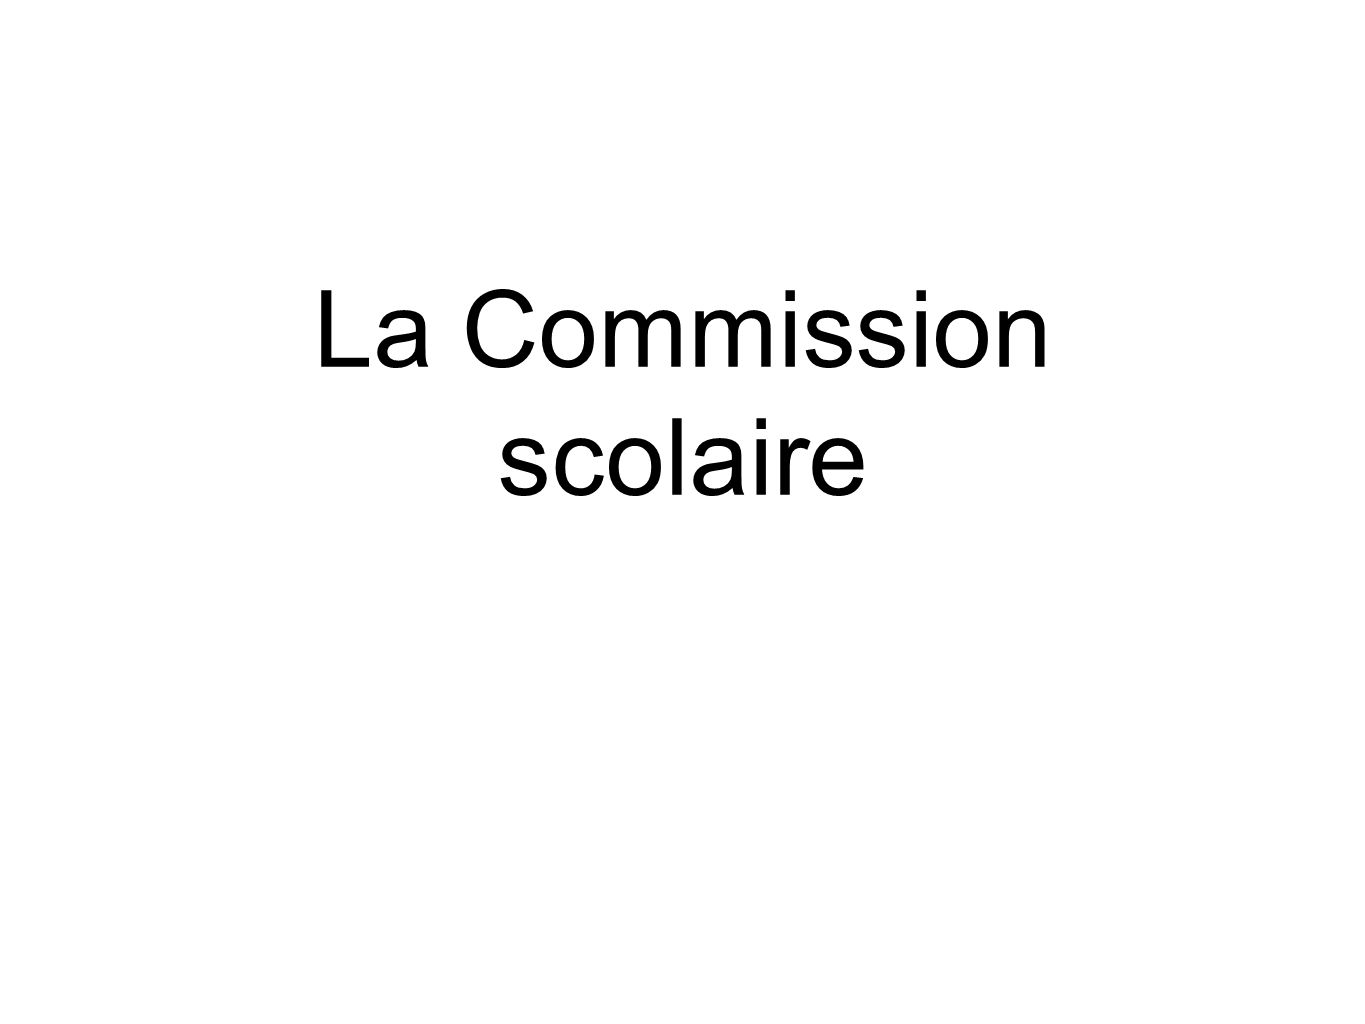 La Commission scolaire